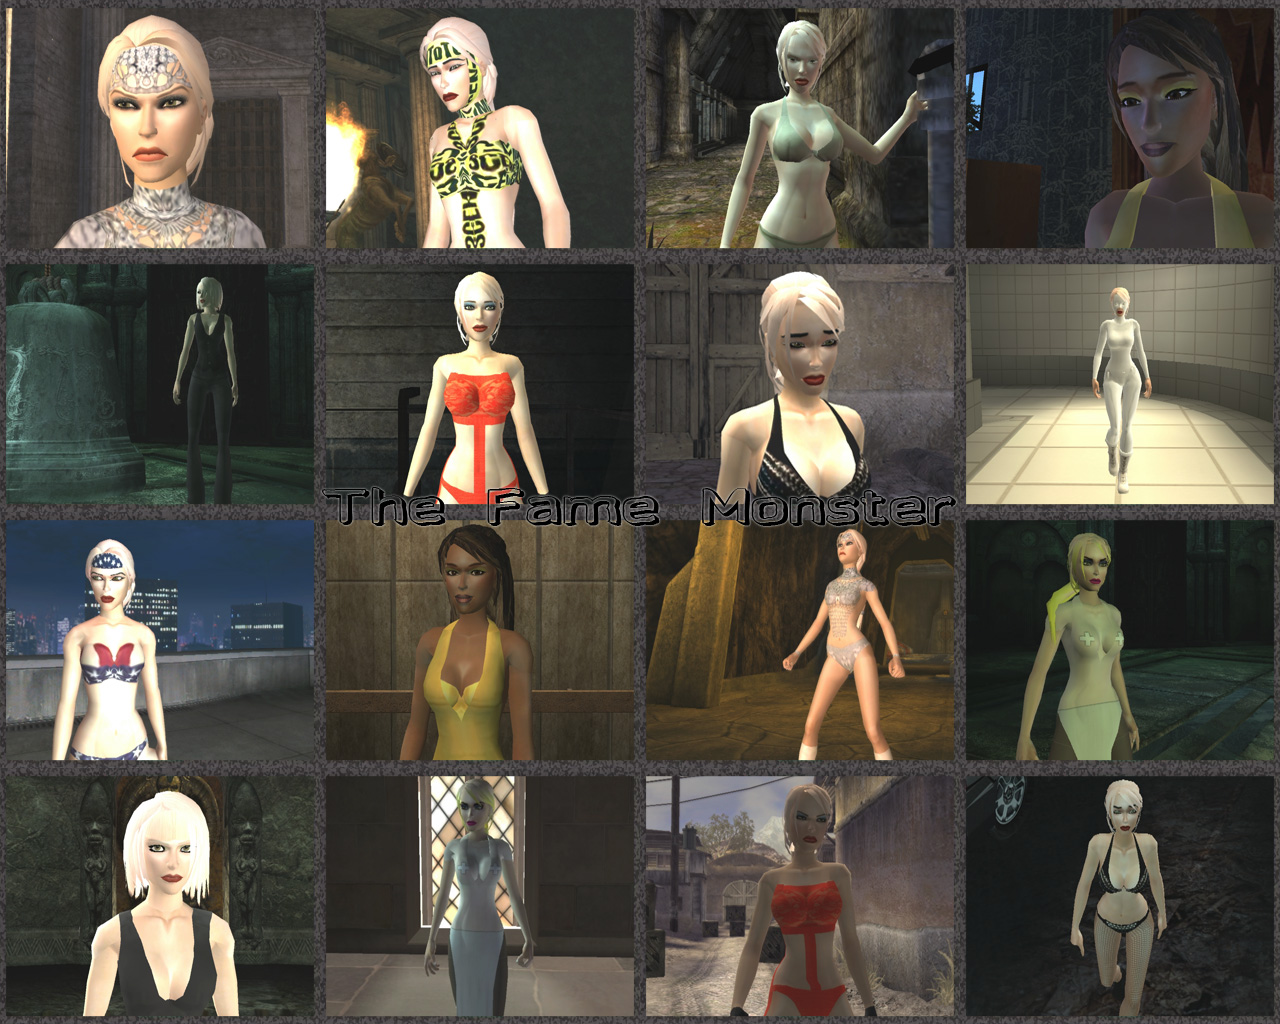 The Fame Monster outfits by Badty92